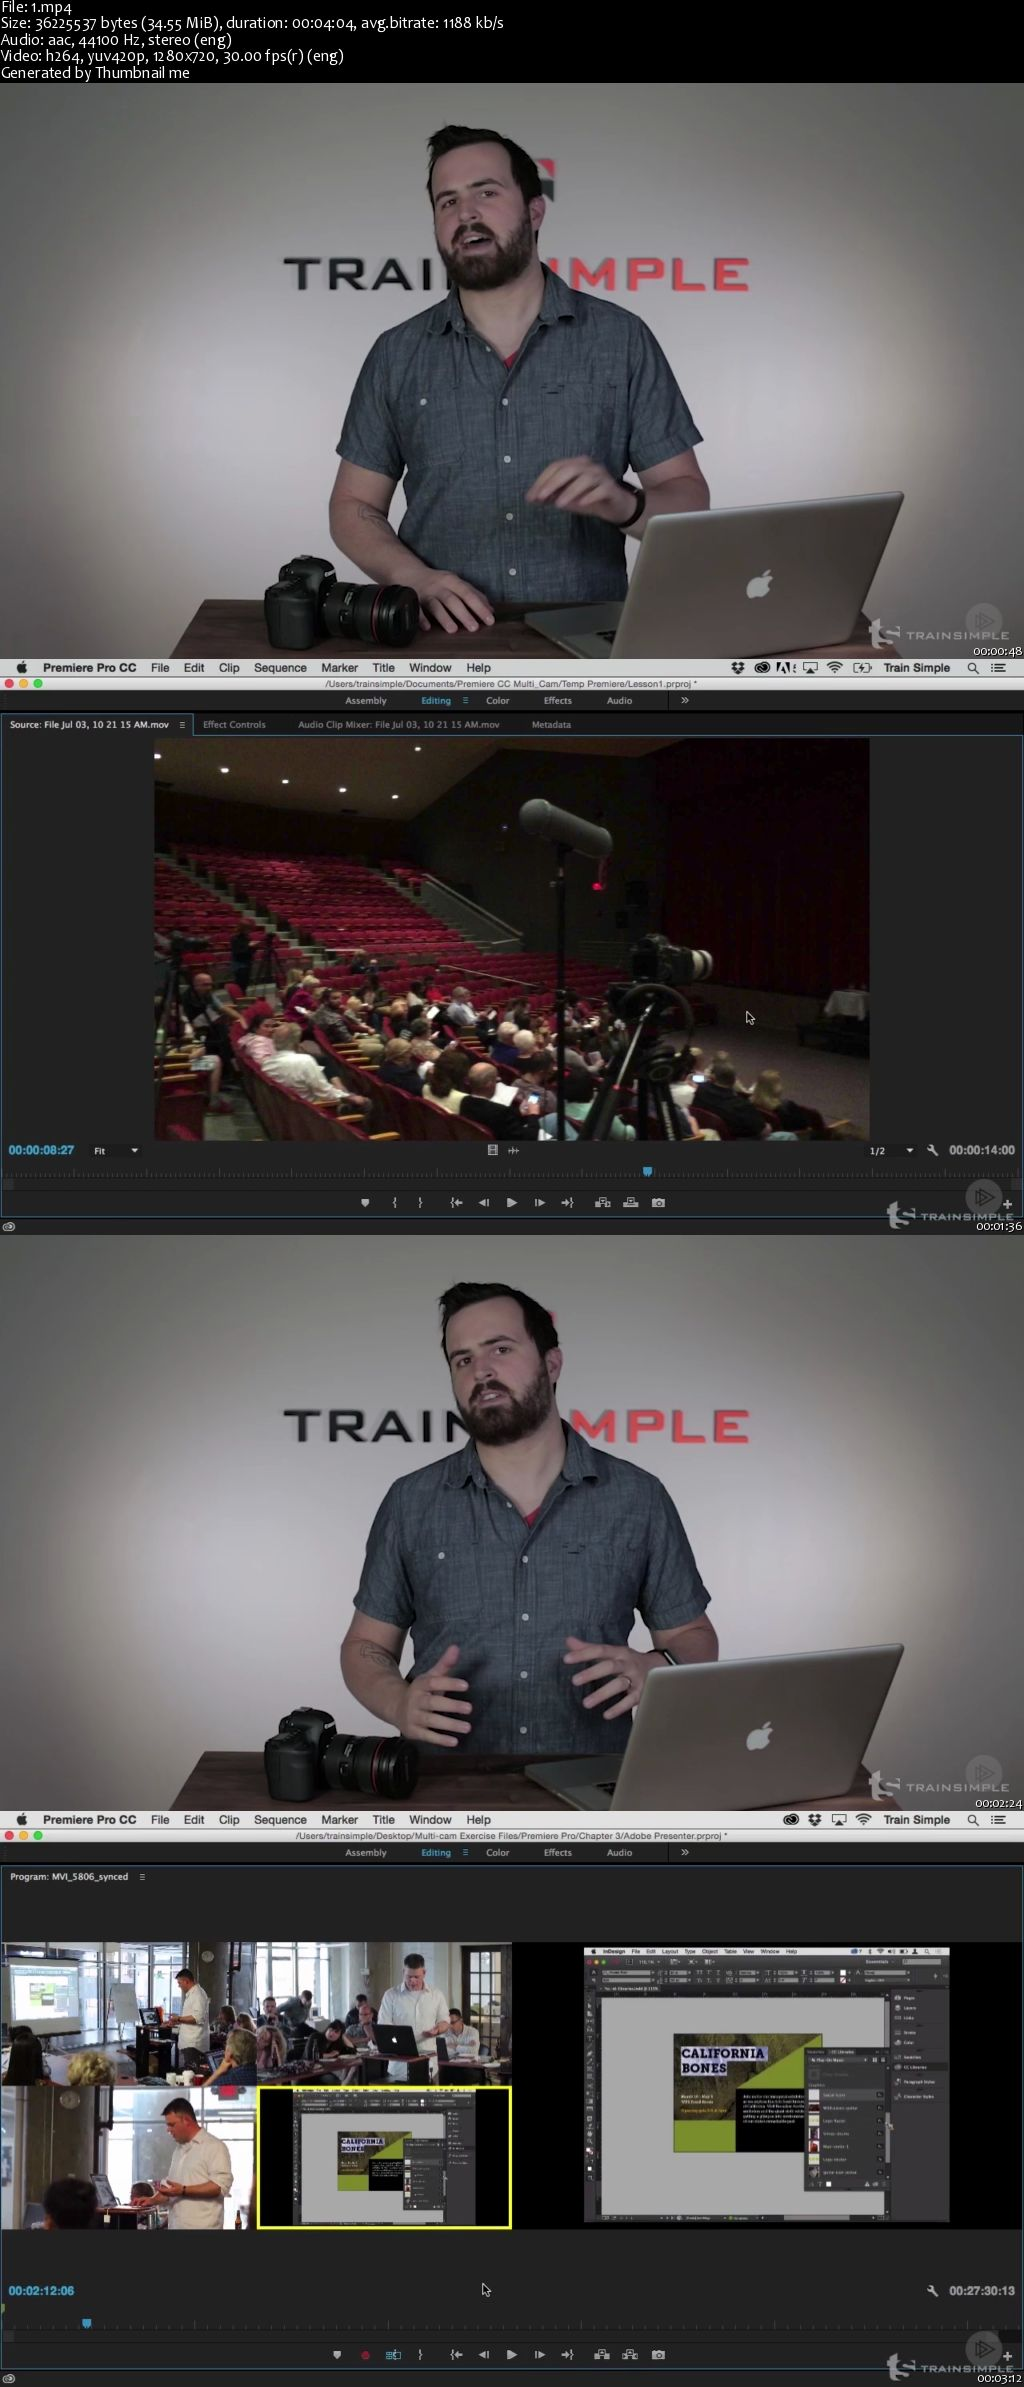 Premiere Pro CC Multi-camera Editing (2016)